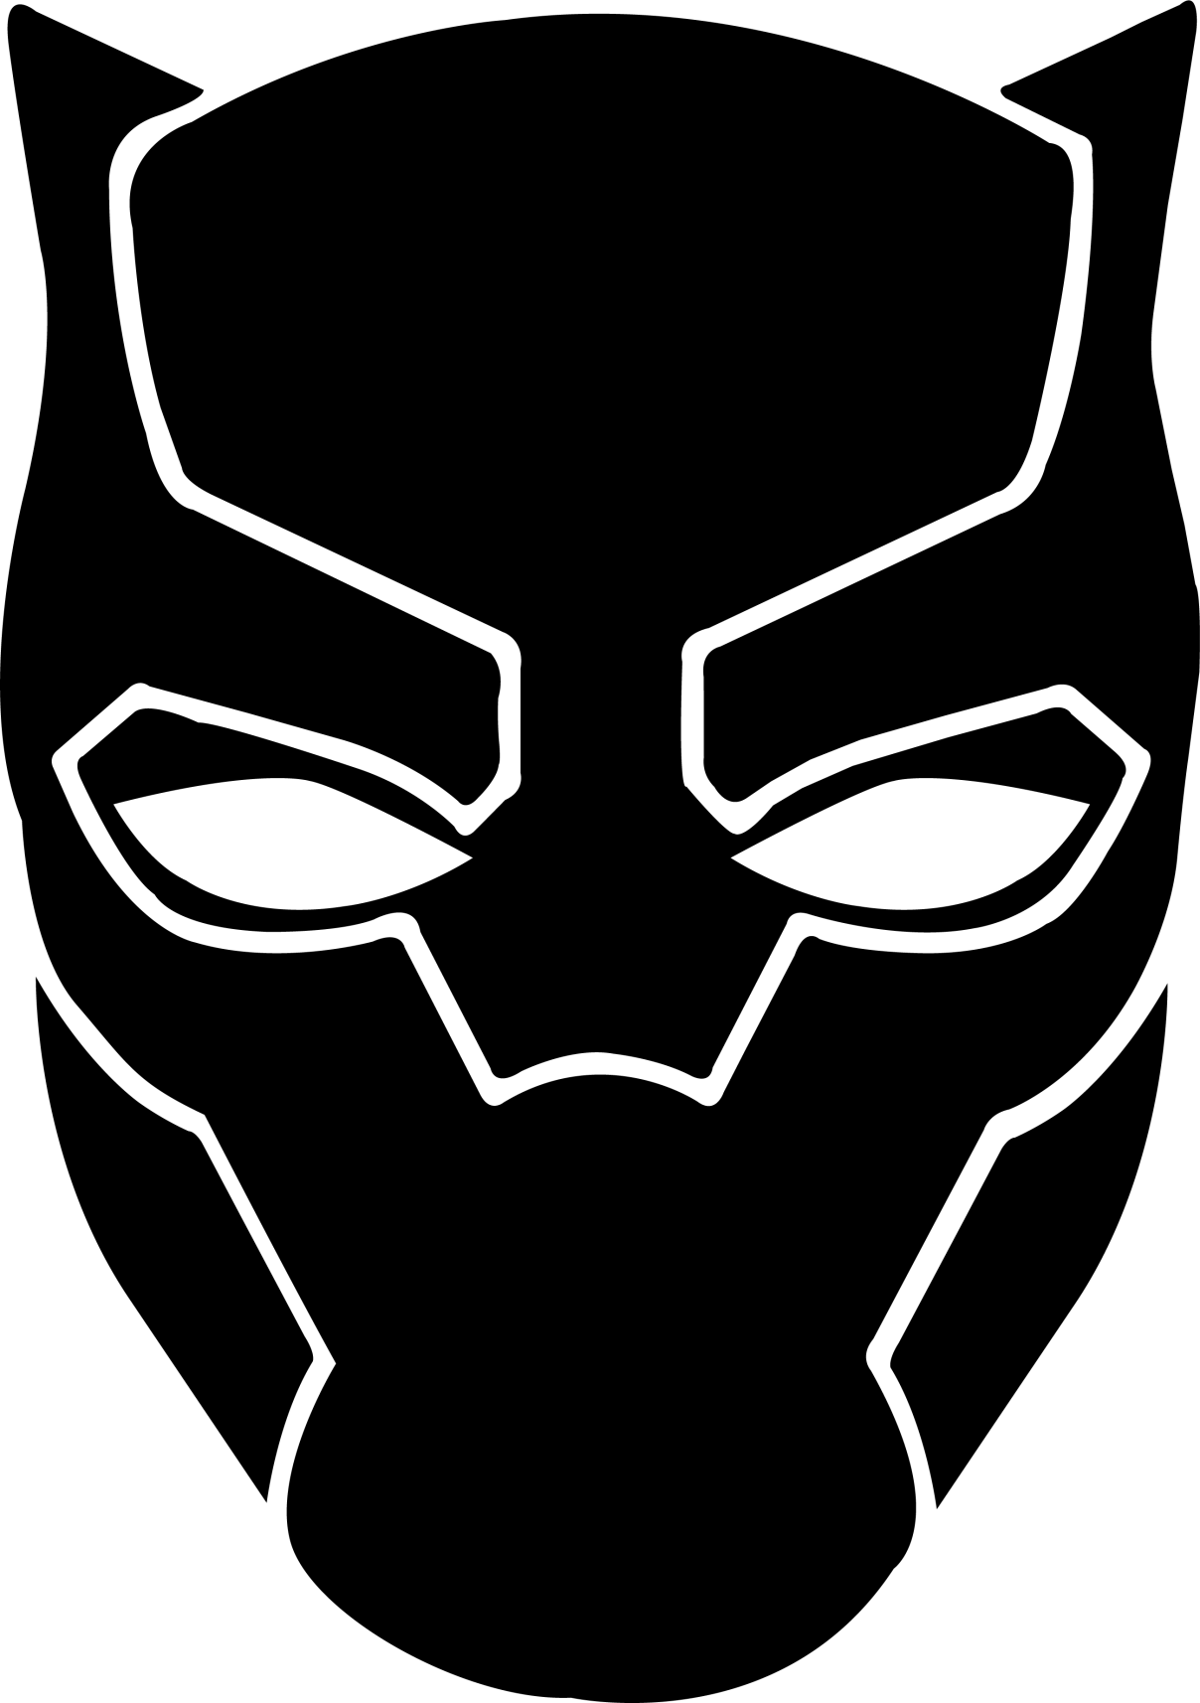 Black panther logo png. Stands as entertaining entry